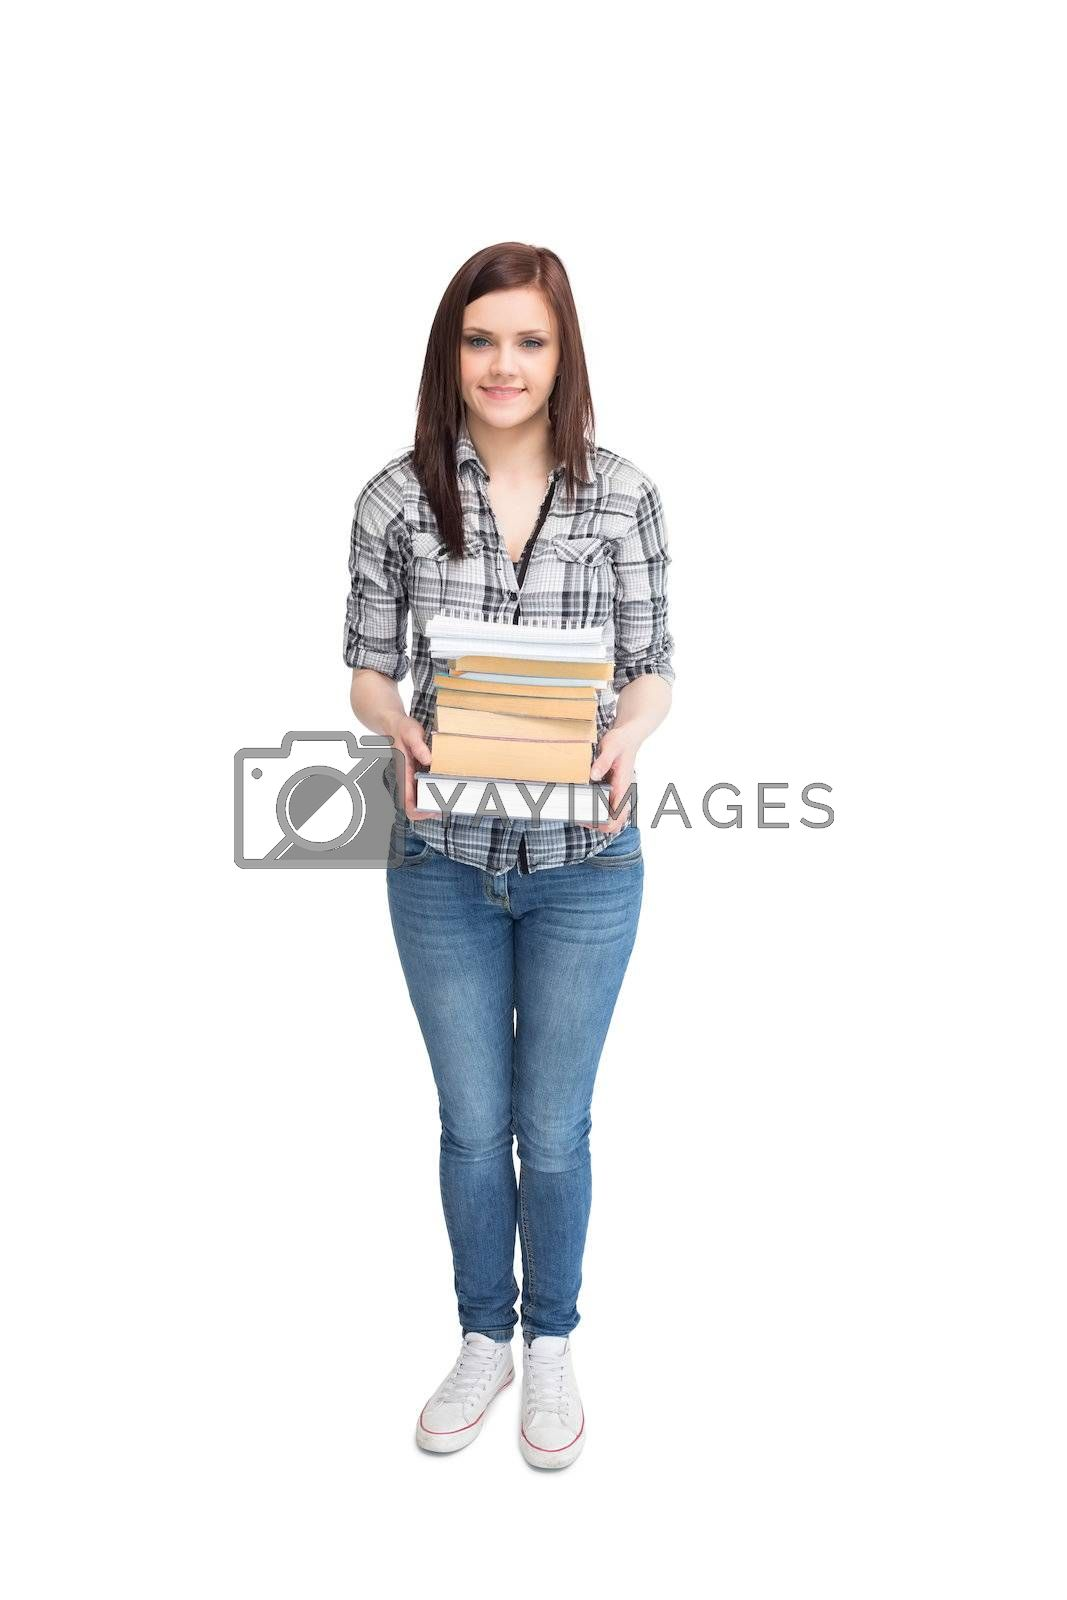 Smiling pretty student holding books by Wavebreakmedia